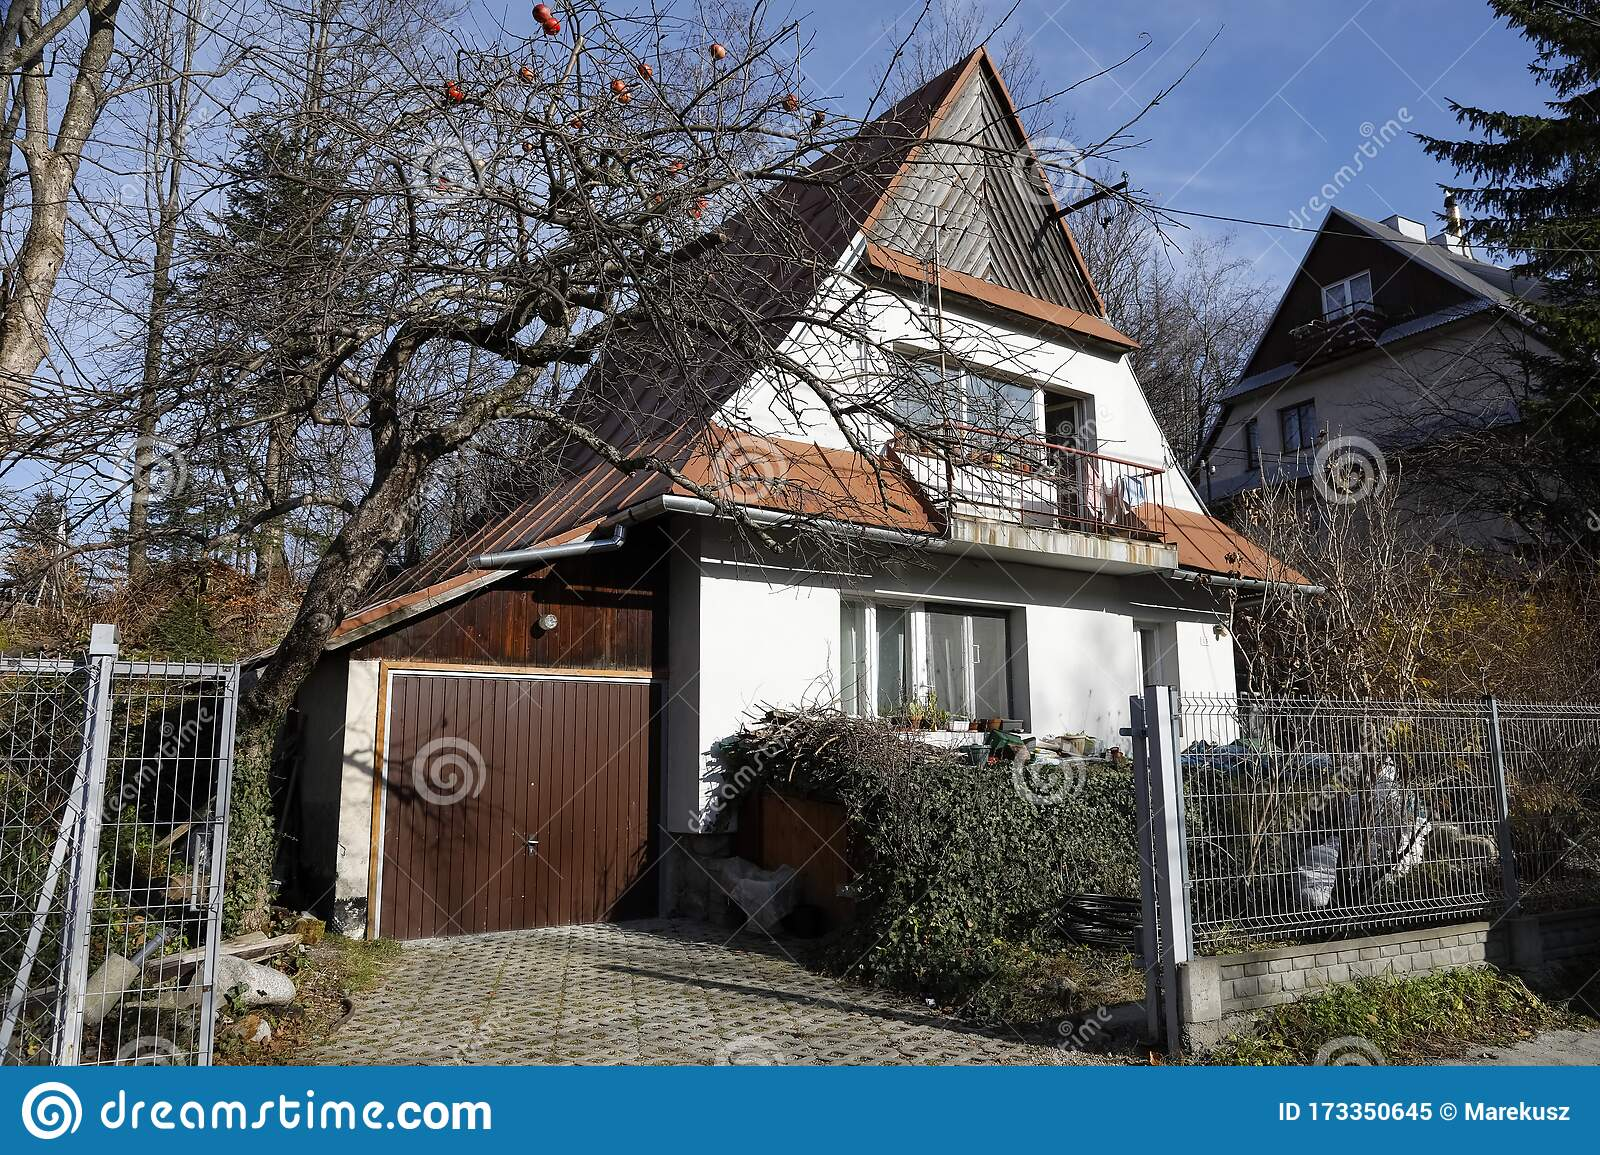 Family House With Sheet Metal Roof Editorial Image Image Of Design Famous 173350645